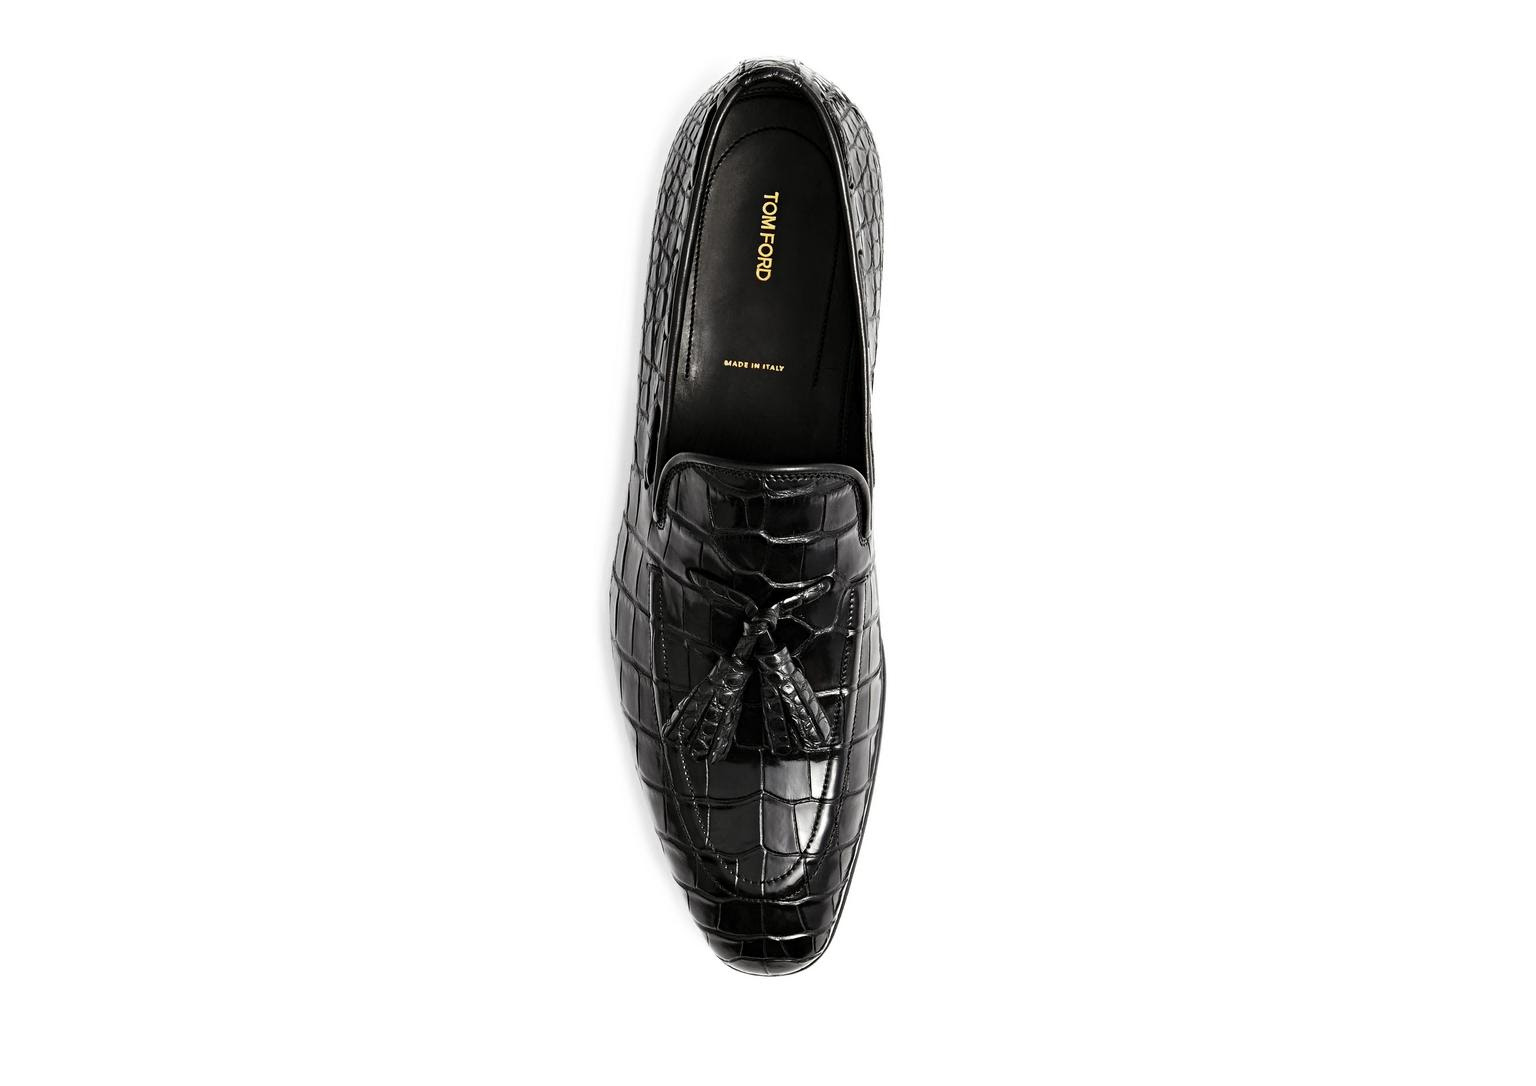 Mens Tassel Loafer Shoes